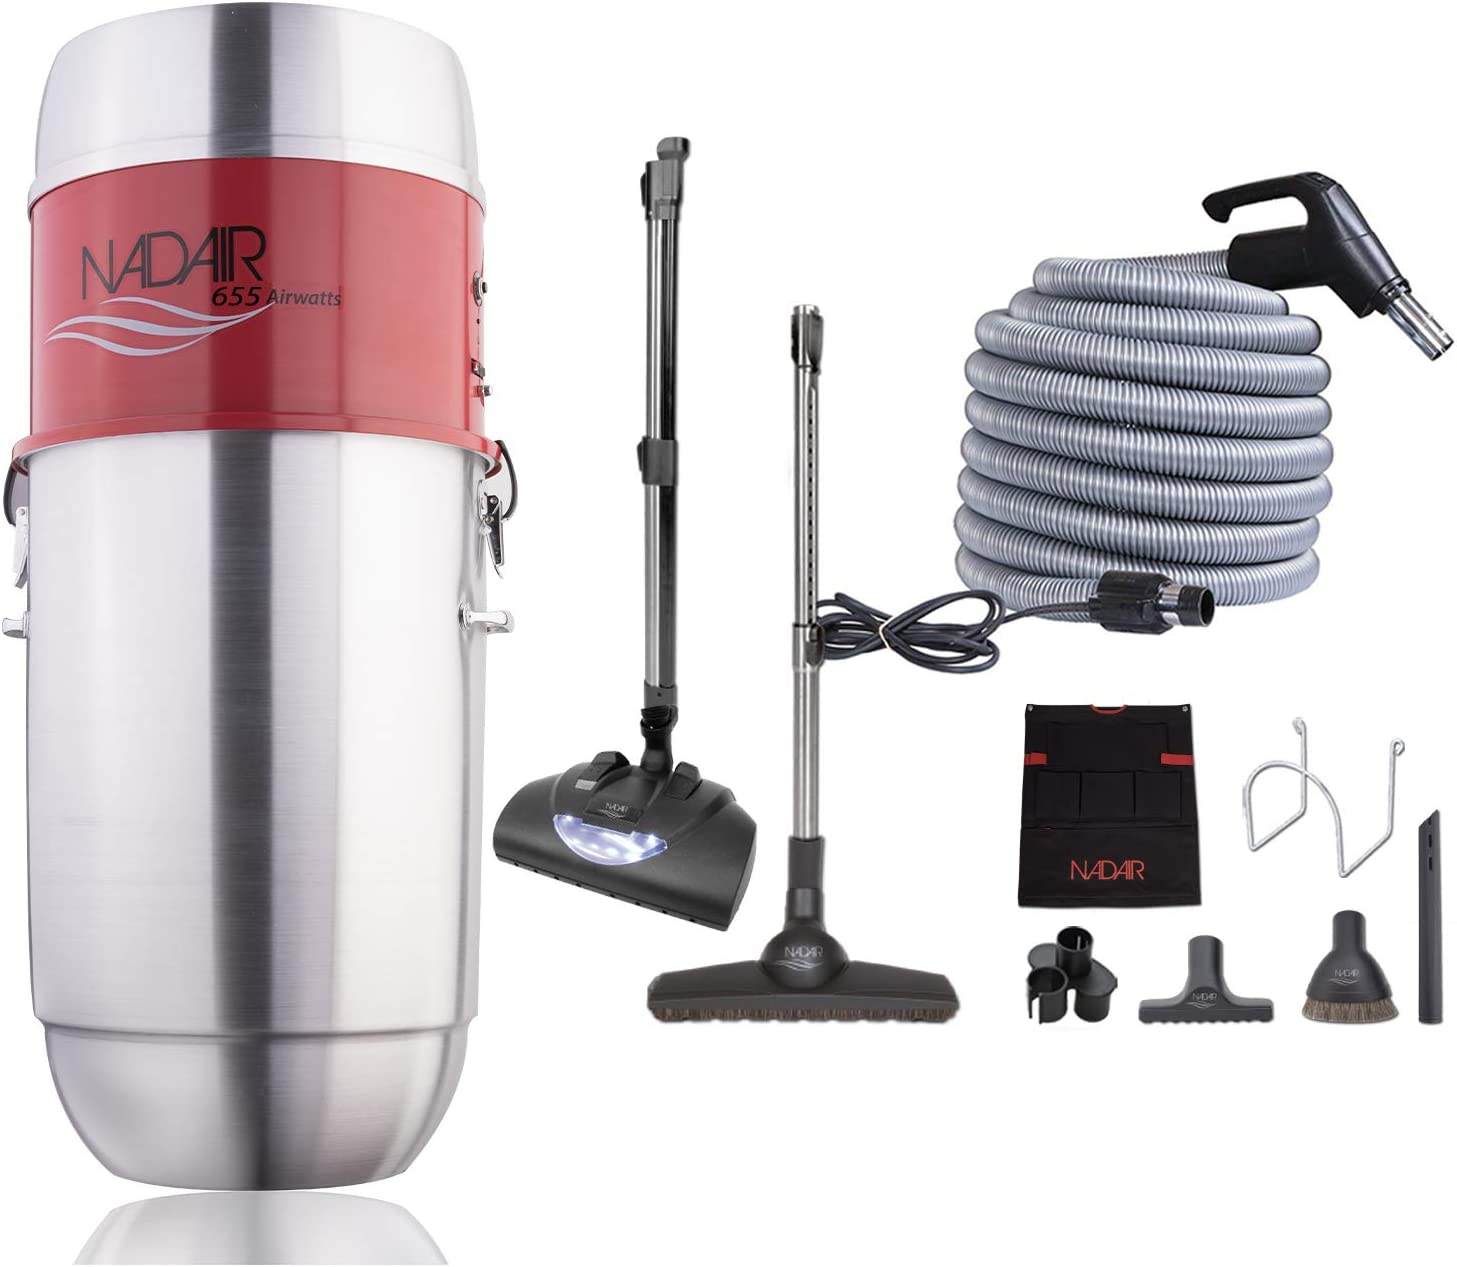 Nadair 655 AW Light Commercial Central Hybrid service Vacuum Limited price sale Fil System